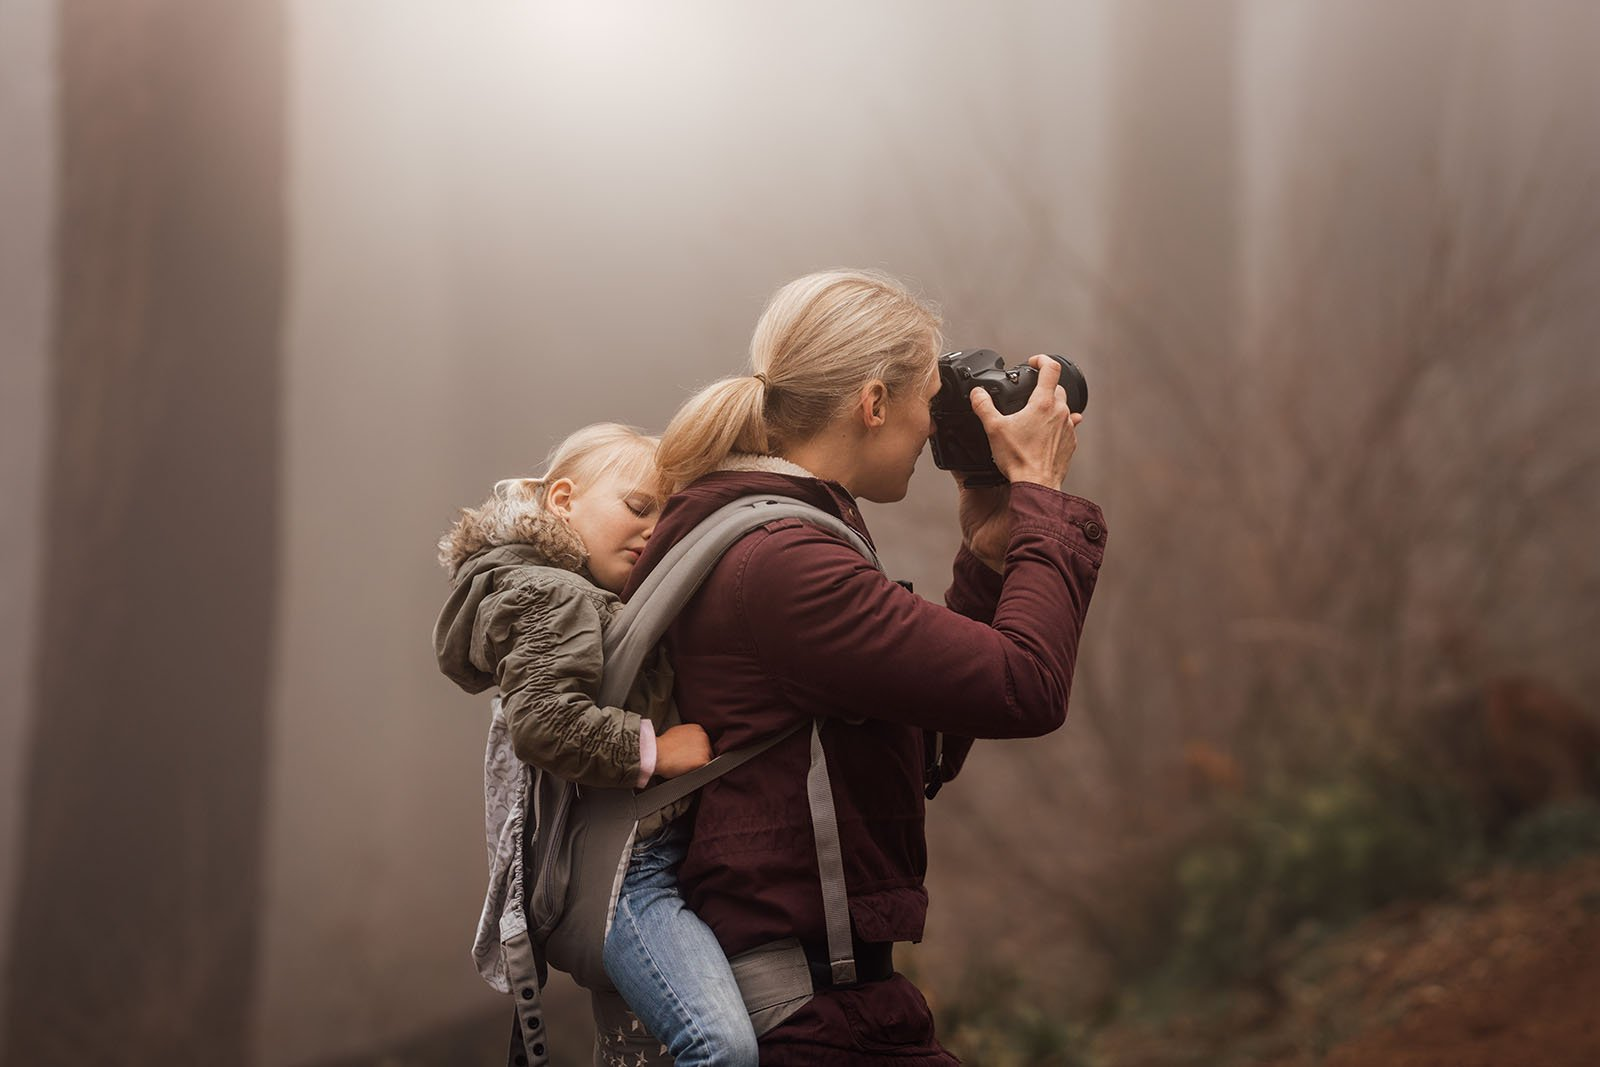 woman-taking-pictures-with-girl-asleep-in-backpack-by-meg-loeks